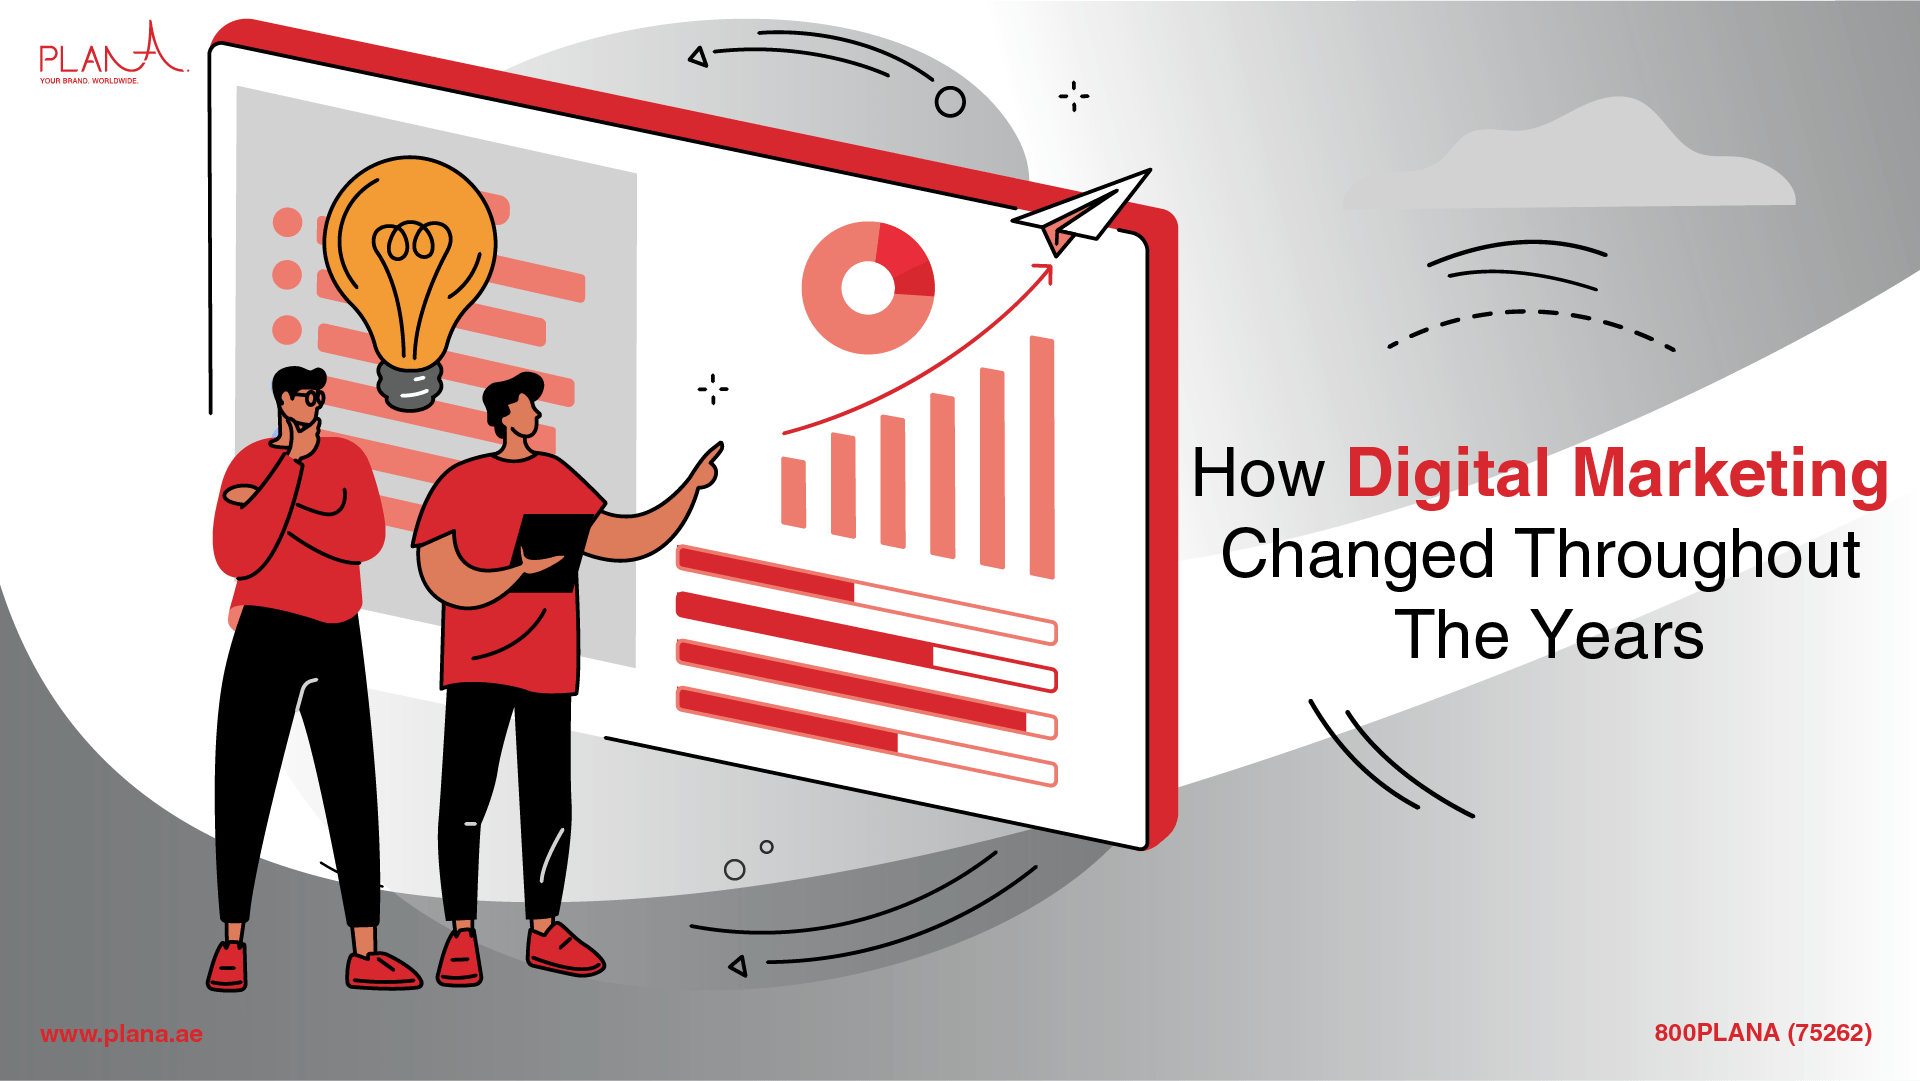 How Digital Marketing Has Changed Throughout The Years